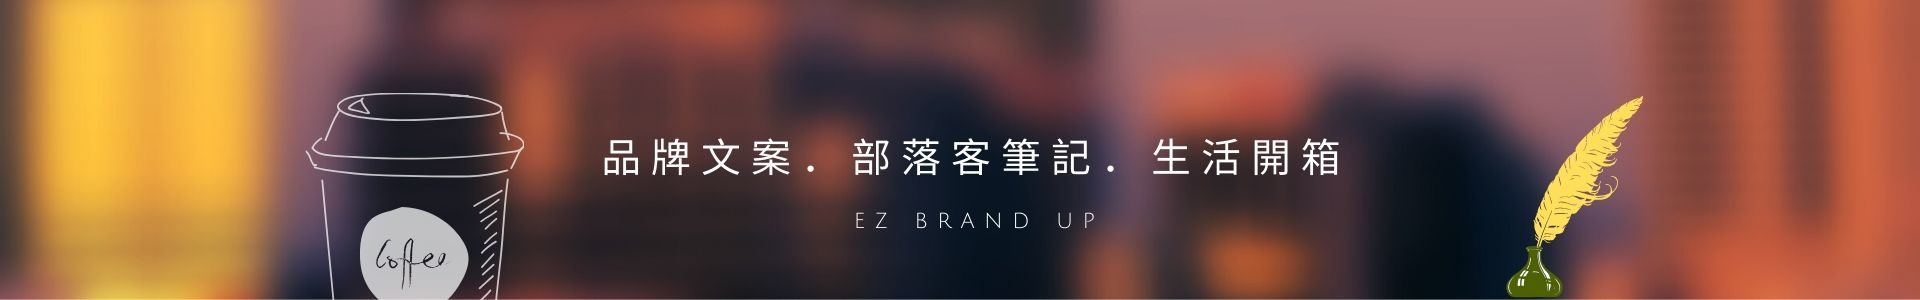 EZ Brand Up Header Banner 2020-1.3.1v